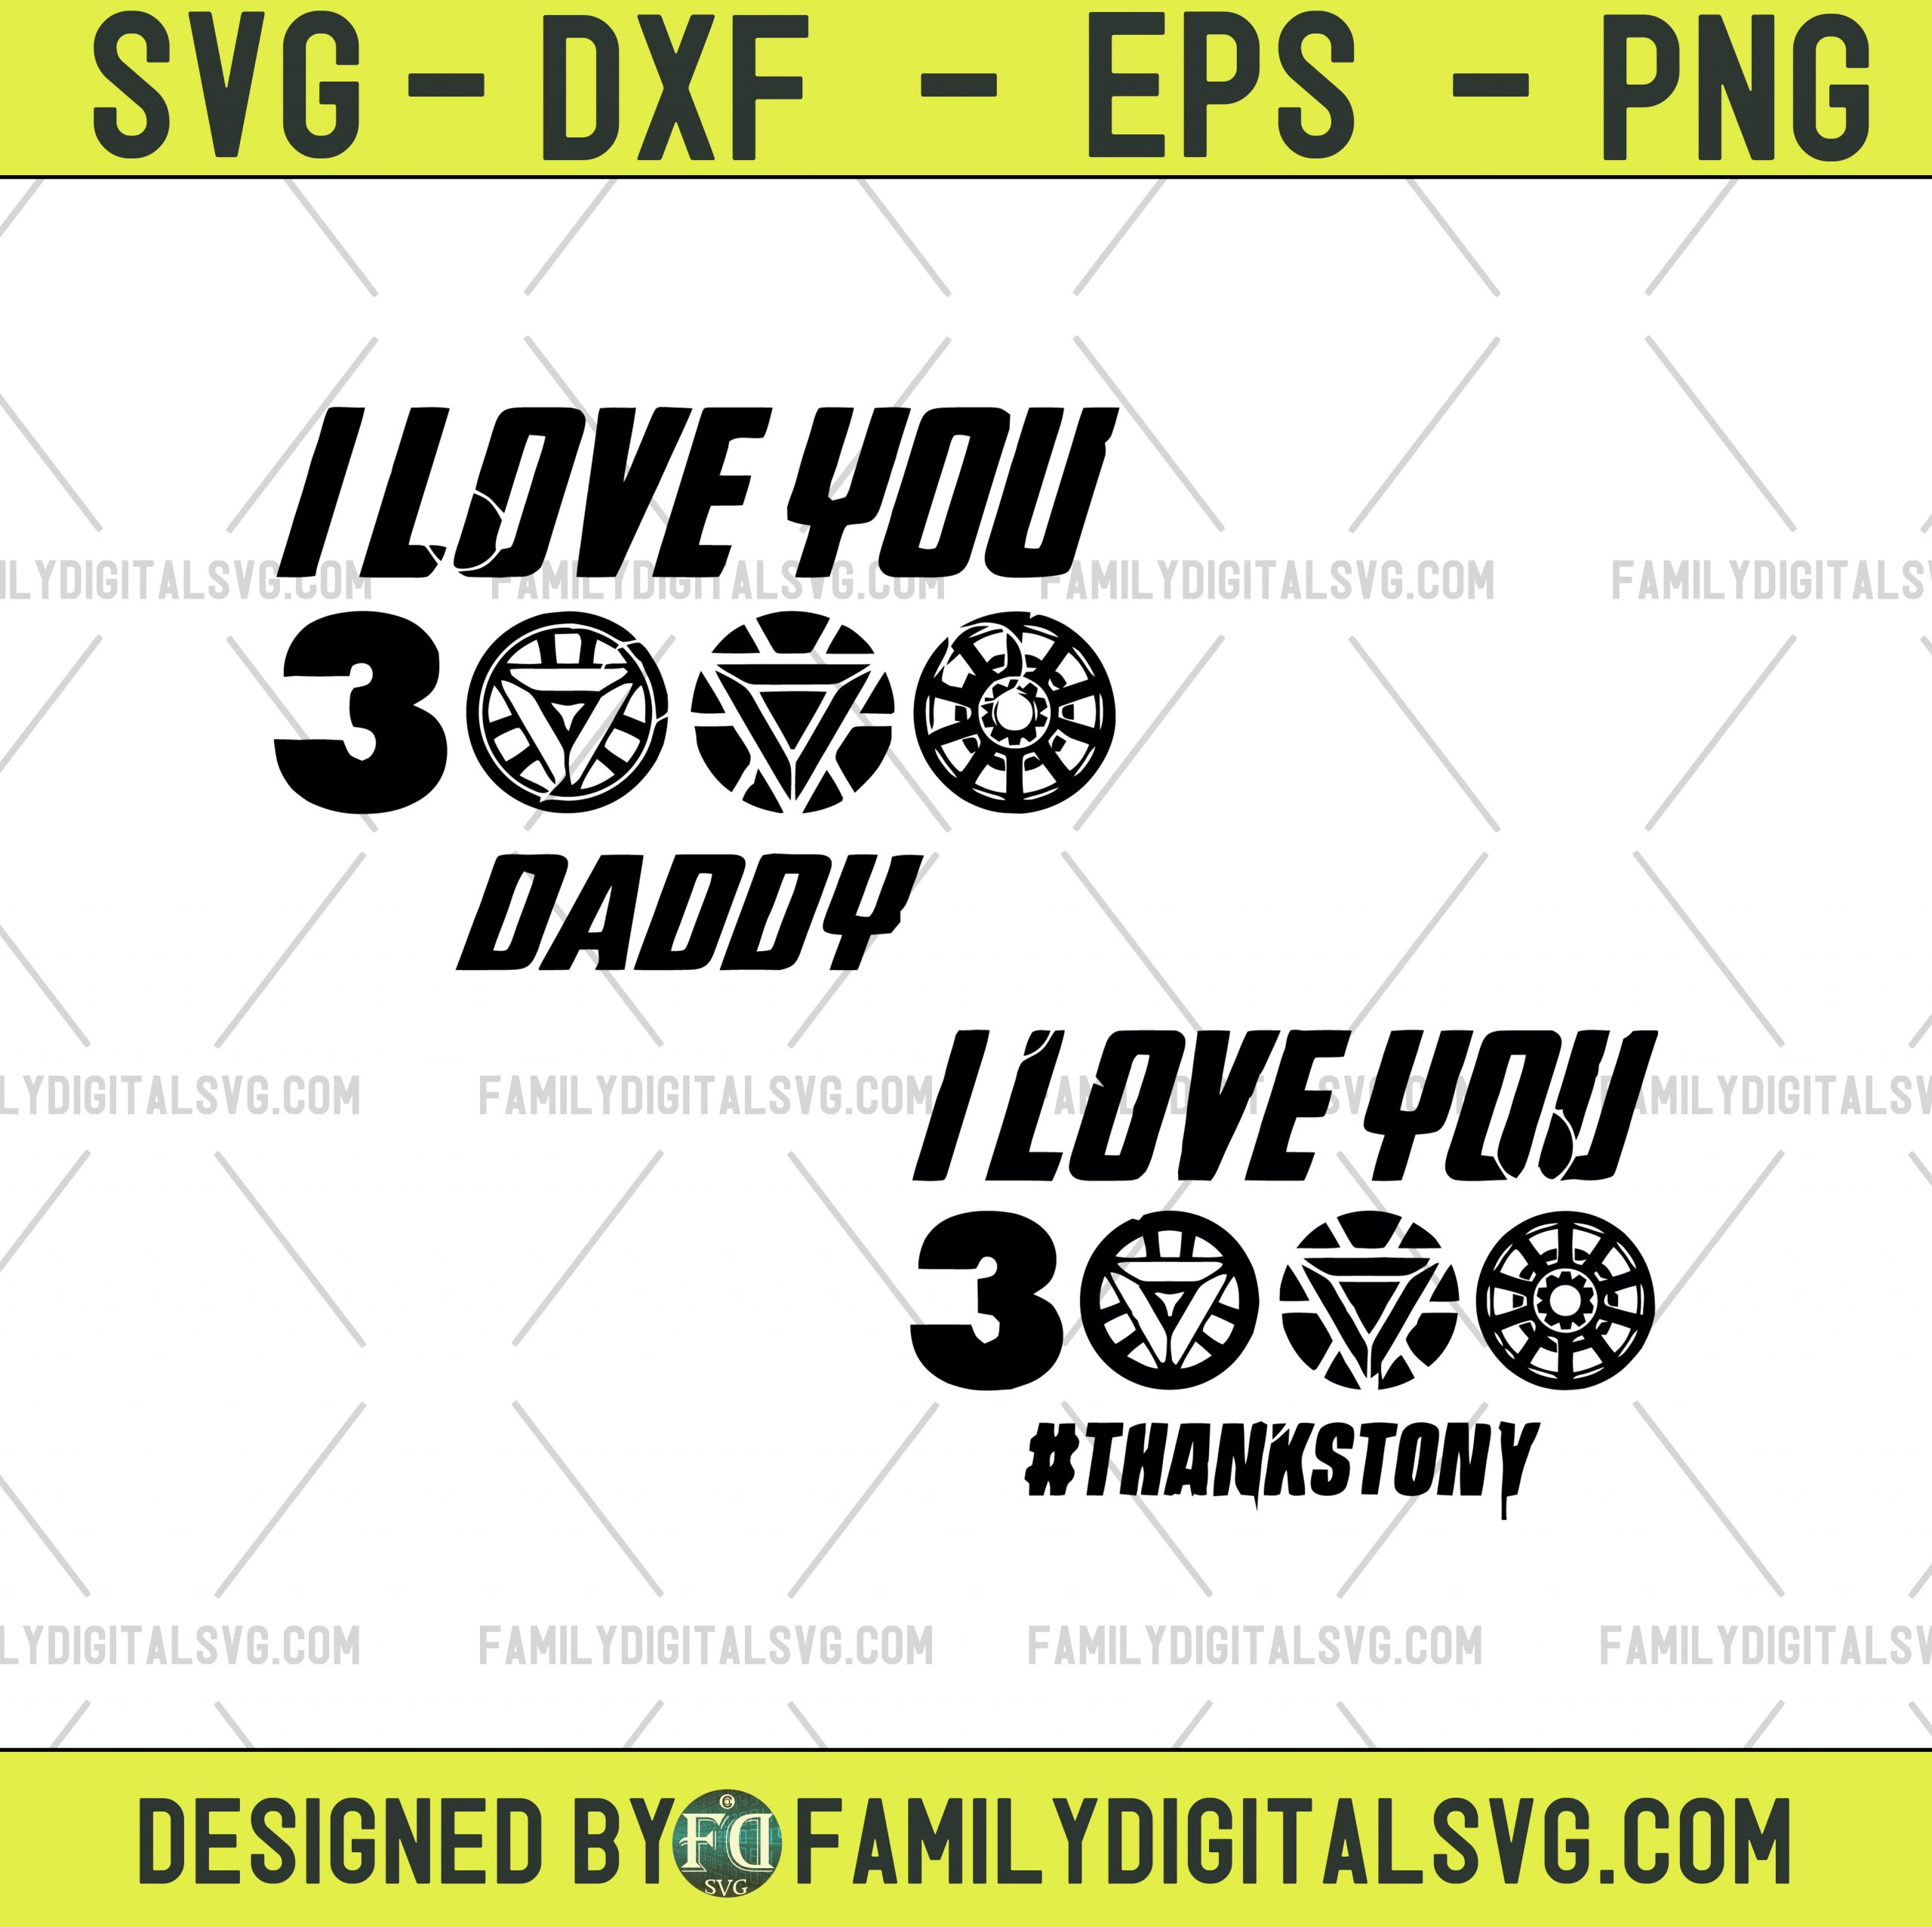 750+ I Love You 3000 Svg for Cricut